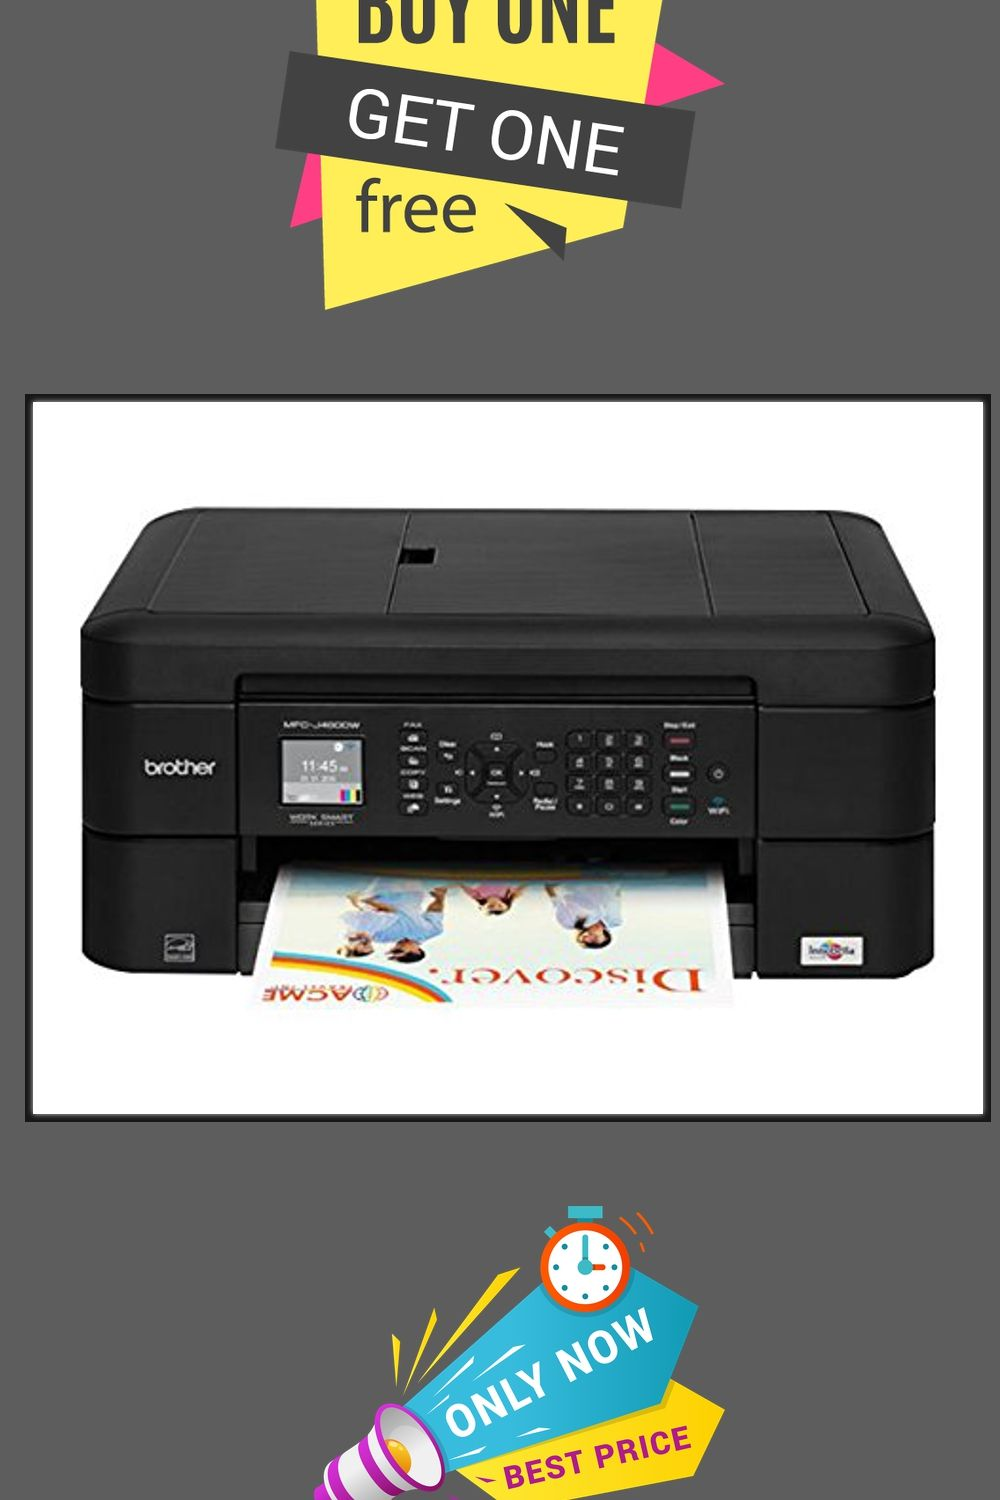 15 Best Labor Day Printer Sales And Deals 2020 Save 50 Labor Day Deal In 2020 Printer Best Printers Best Black Friday